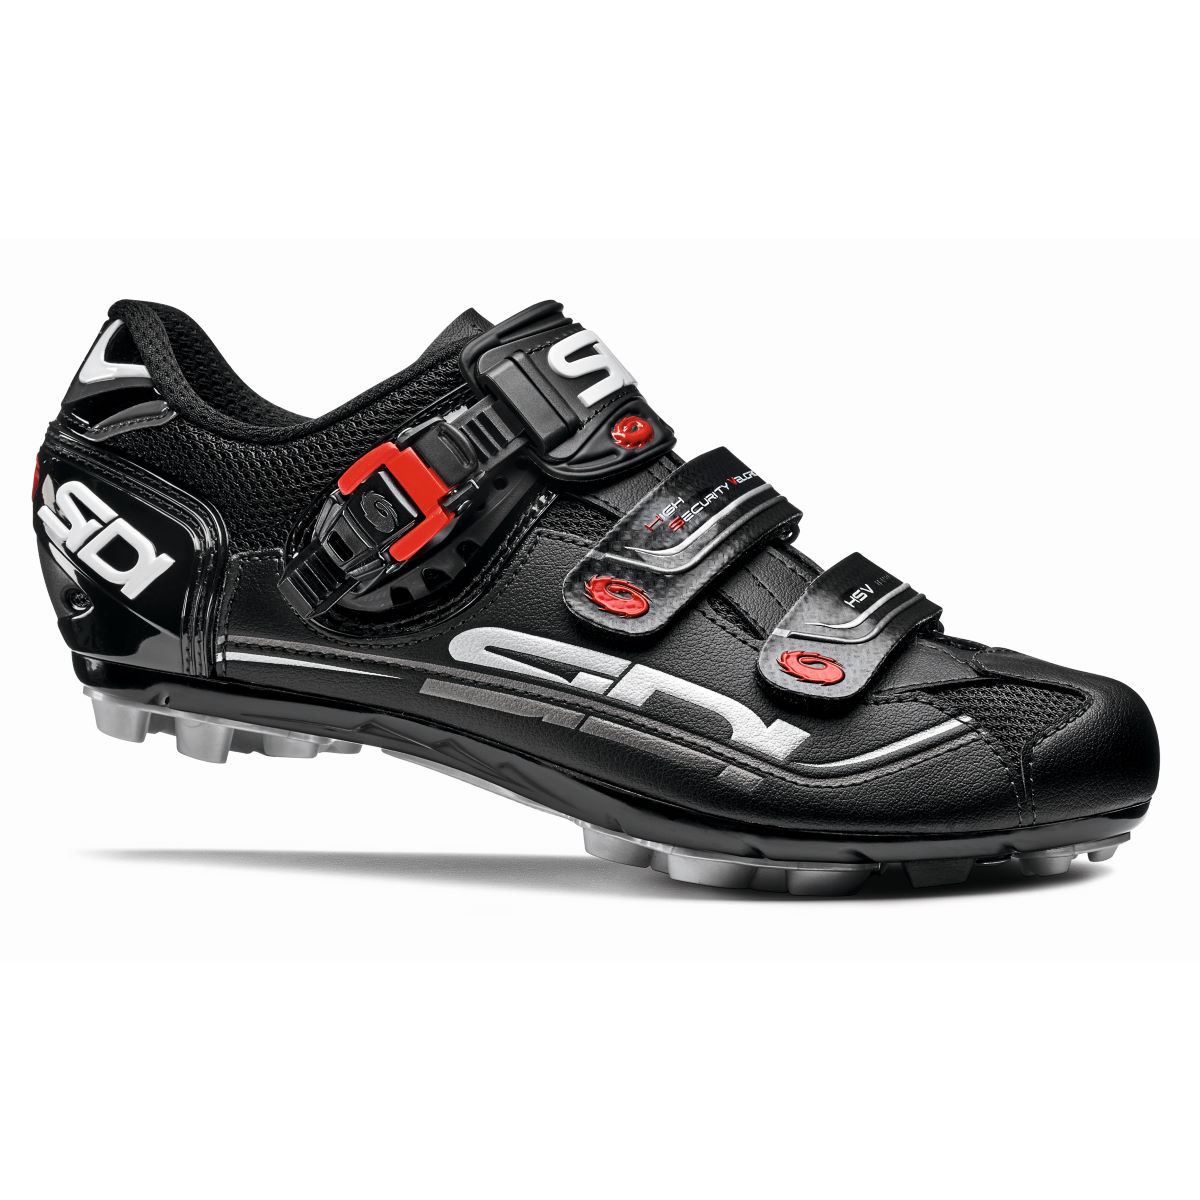 Sidi Eagle 7 MTB Shoes - 43 Black/Black | Offroad Shoes